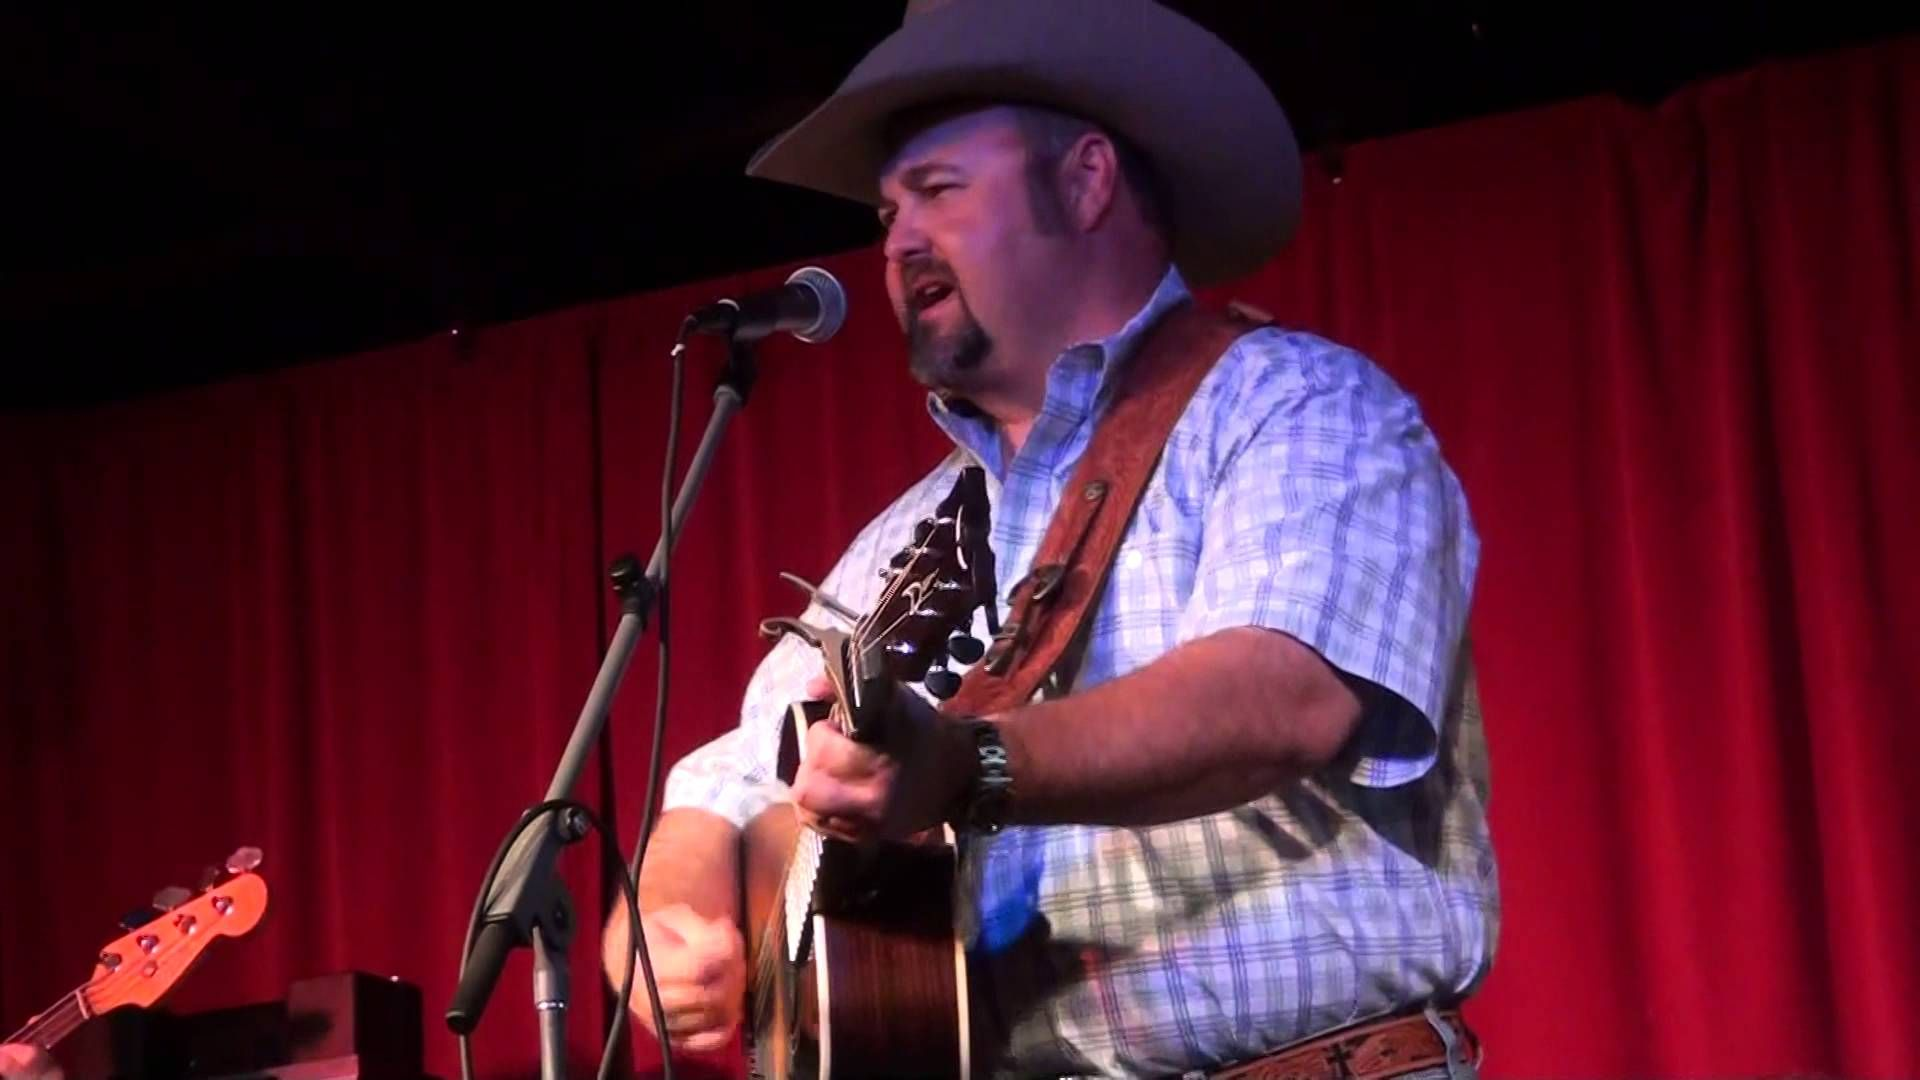 Daryle Singletary   Im The Only Hell Mama Ever Raised MUSIC 1920x1080